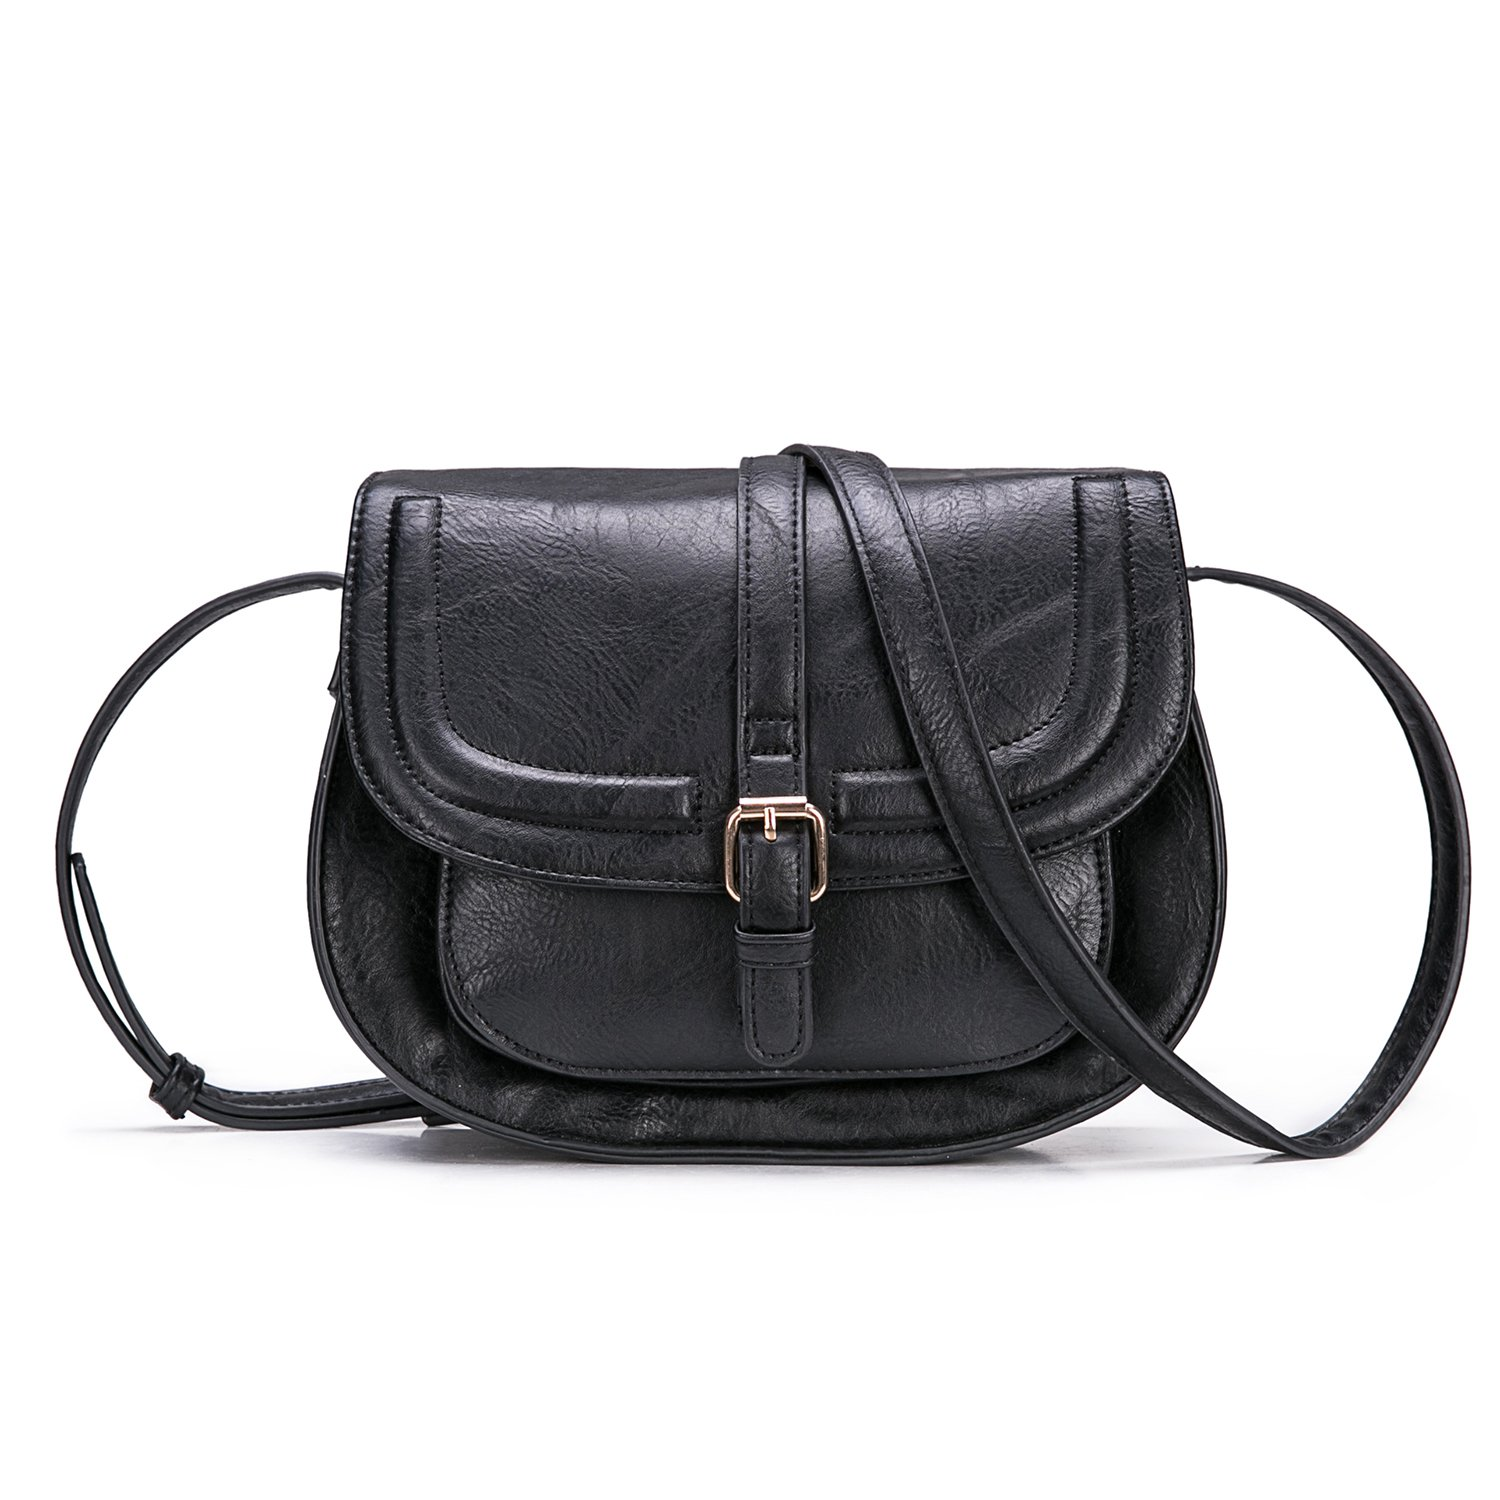 Small Purse Vintage Satchel for Women PU Leather Cover Hasp Crossbody Bag  and Saddle Shoulder Bag with Long Adjustable Strap 1233e9d35e4a3